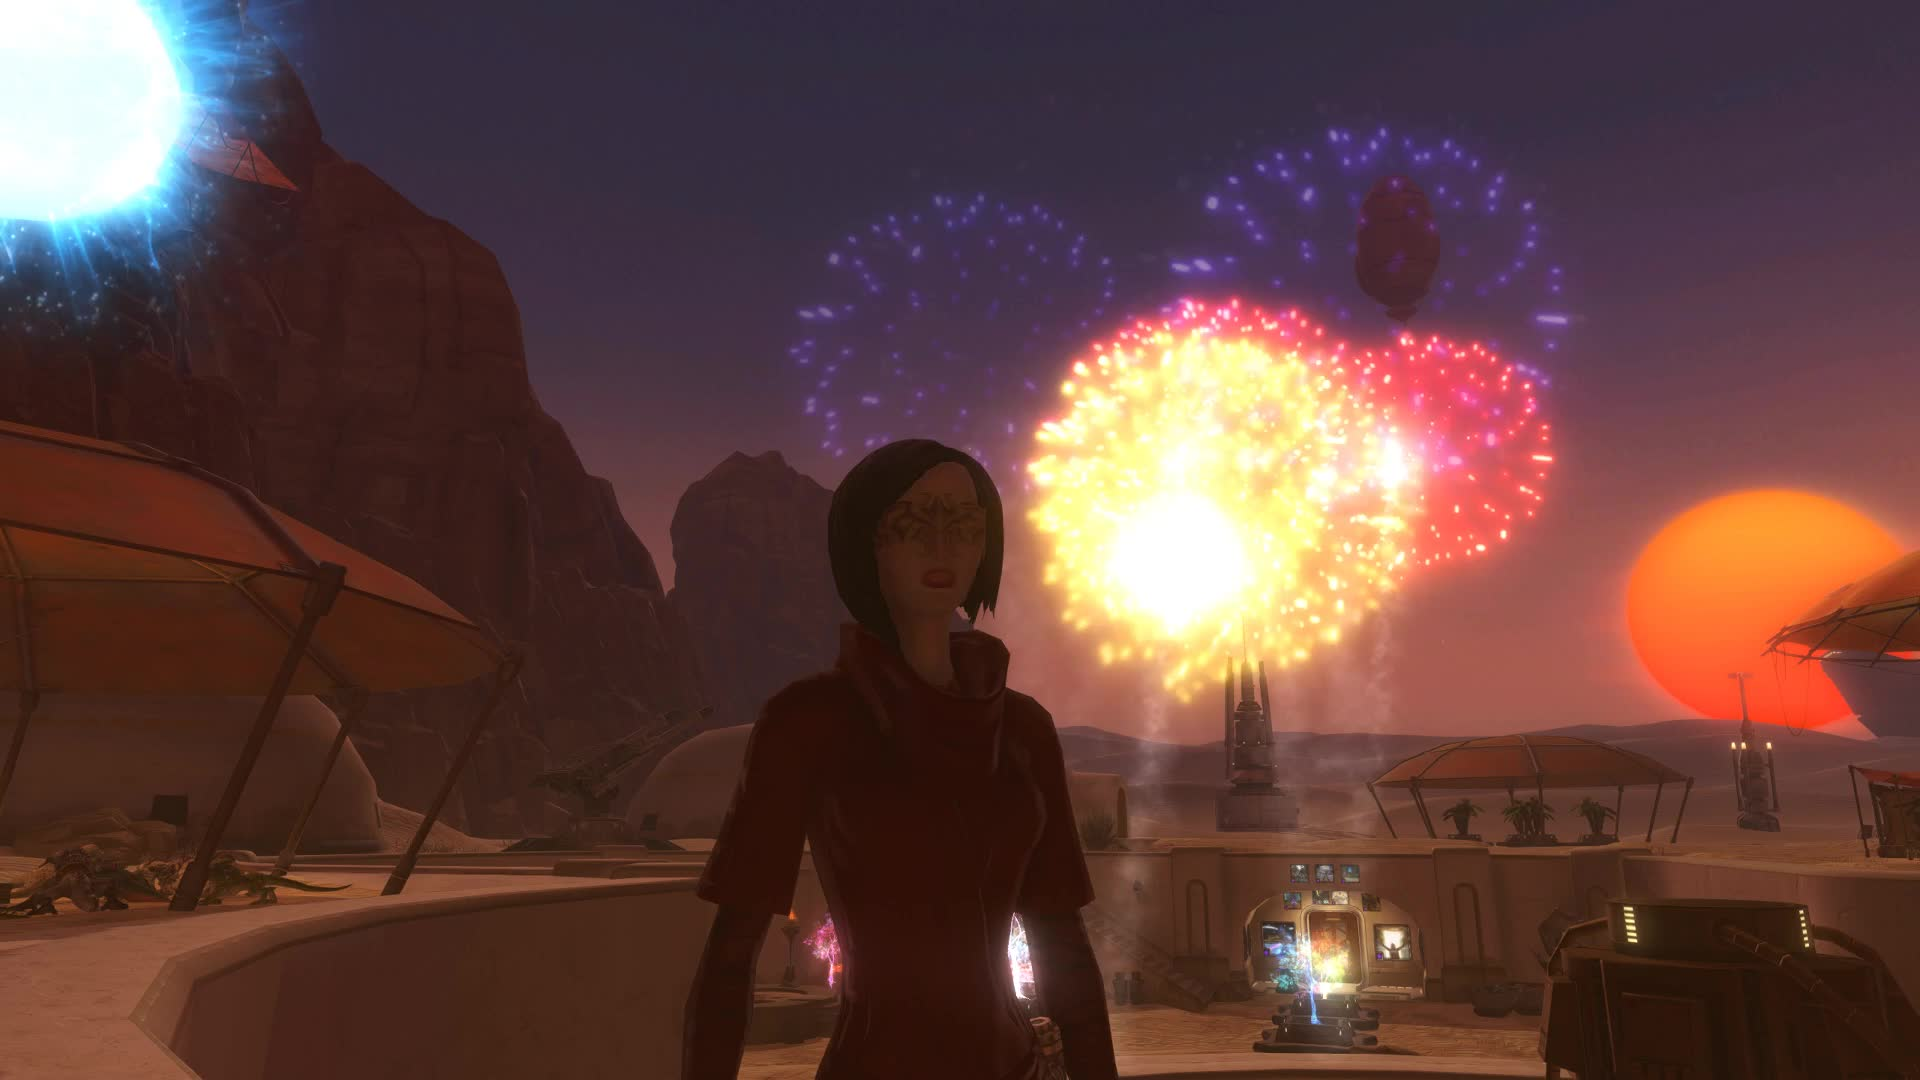 fireworks, mmo, mmorpg, new years, star wars, star wars the old republic, swtor, tatooine, the old republic, tor, SWTOR New Year's Eve GIFs